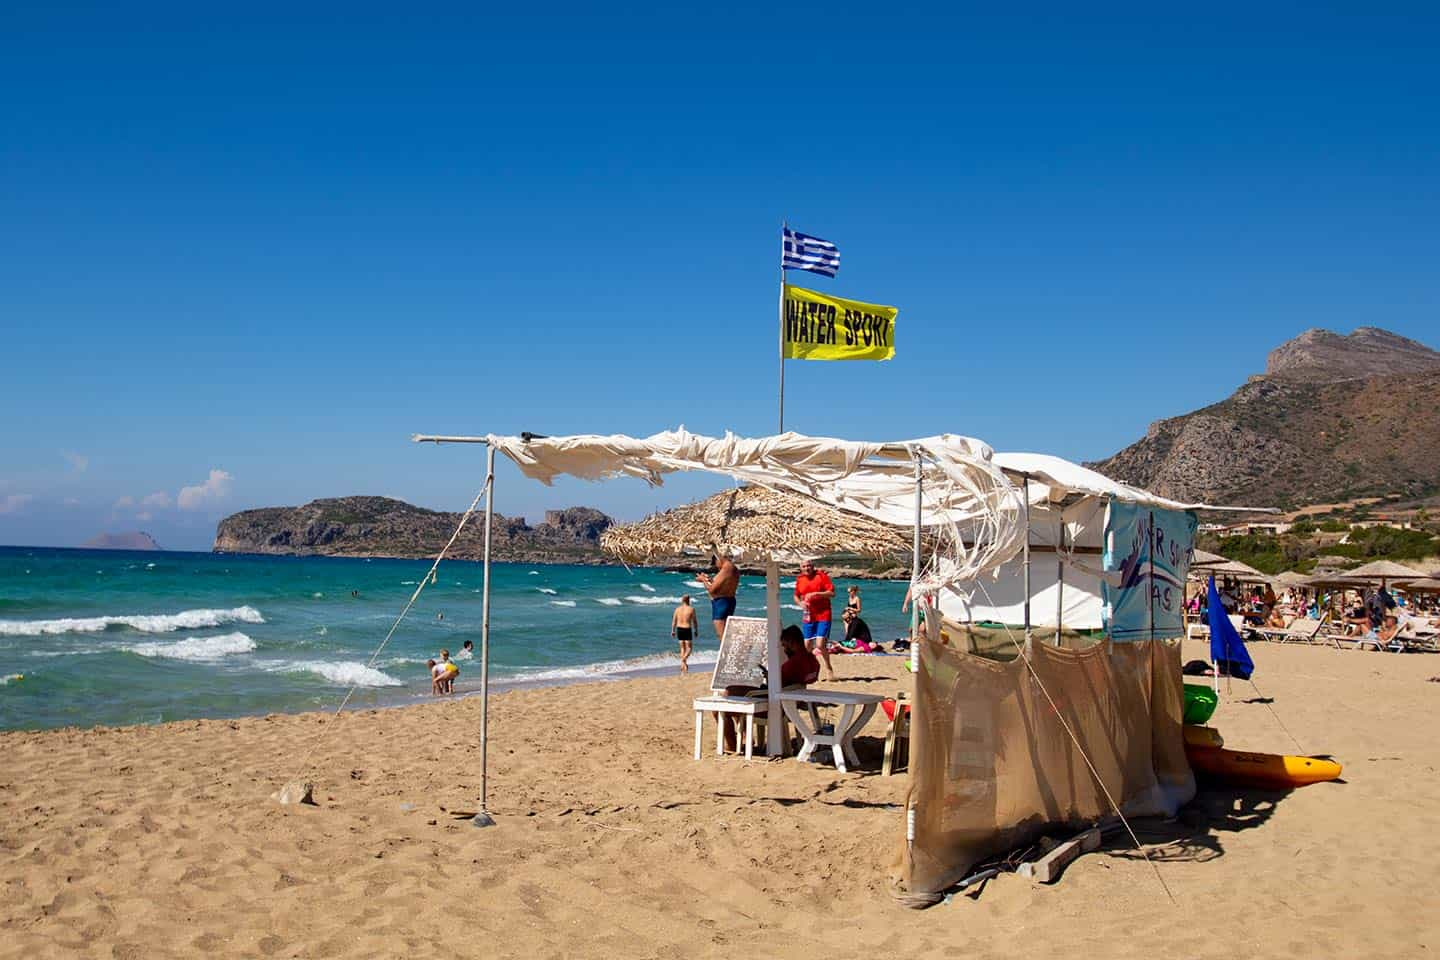 Image of a stall hiring out watersports equipment on Falassarna beach